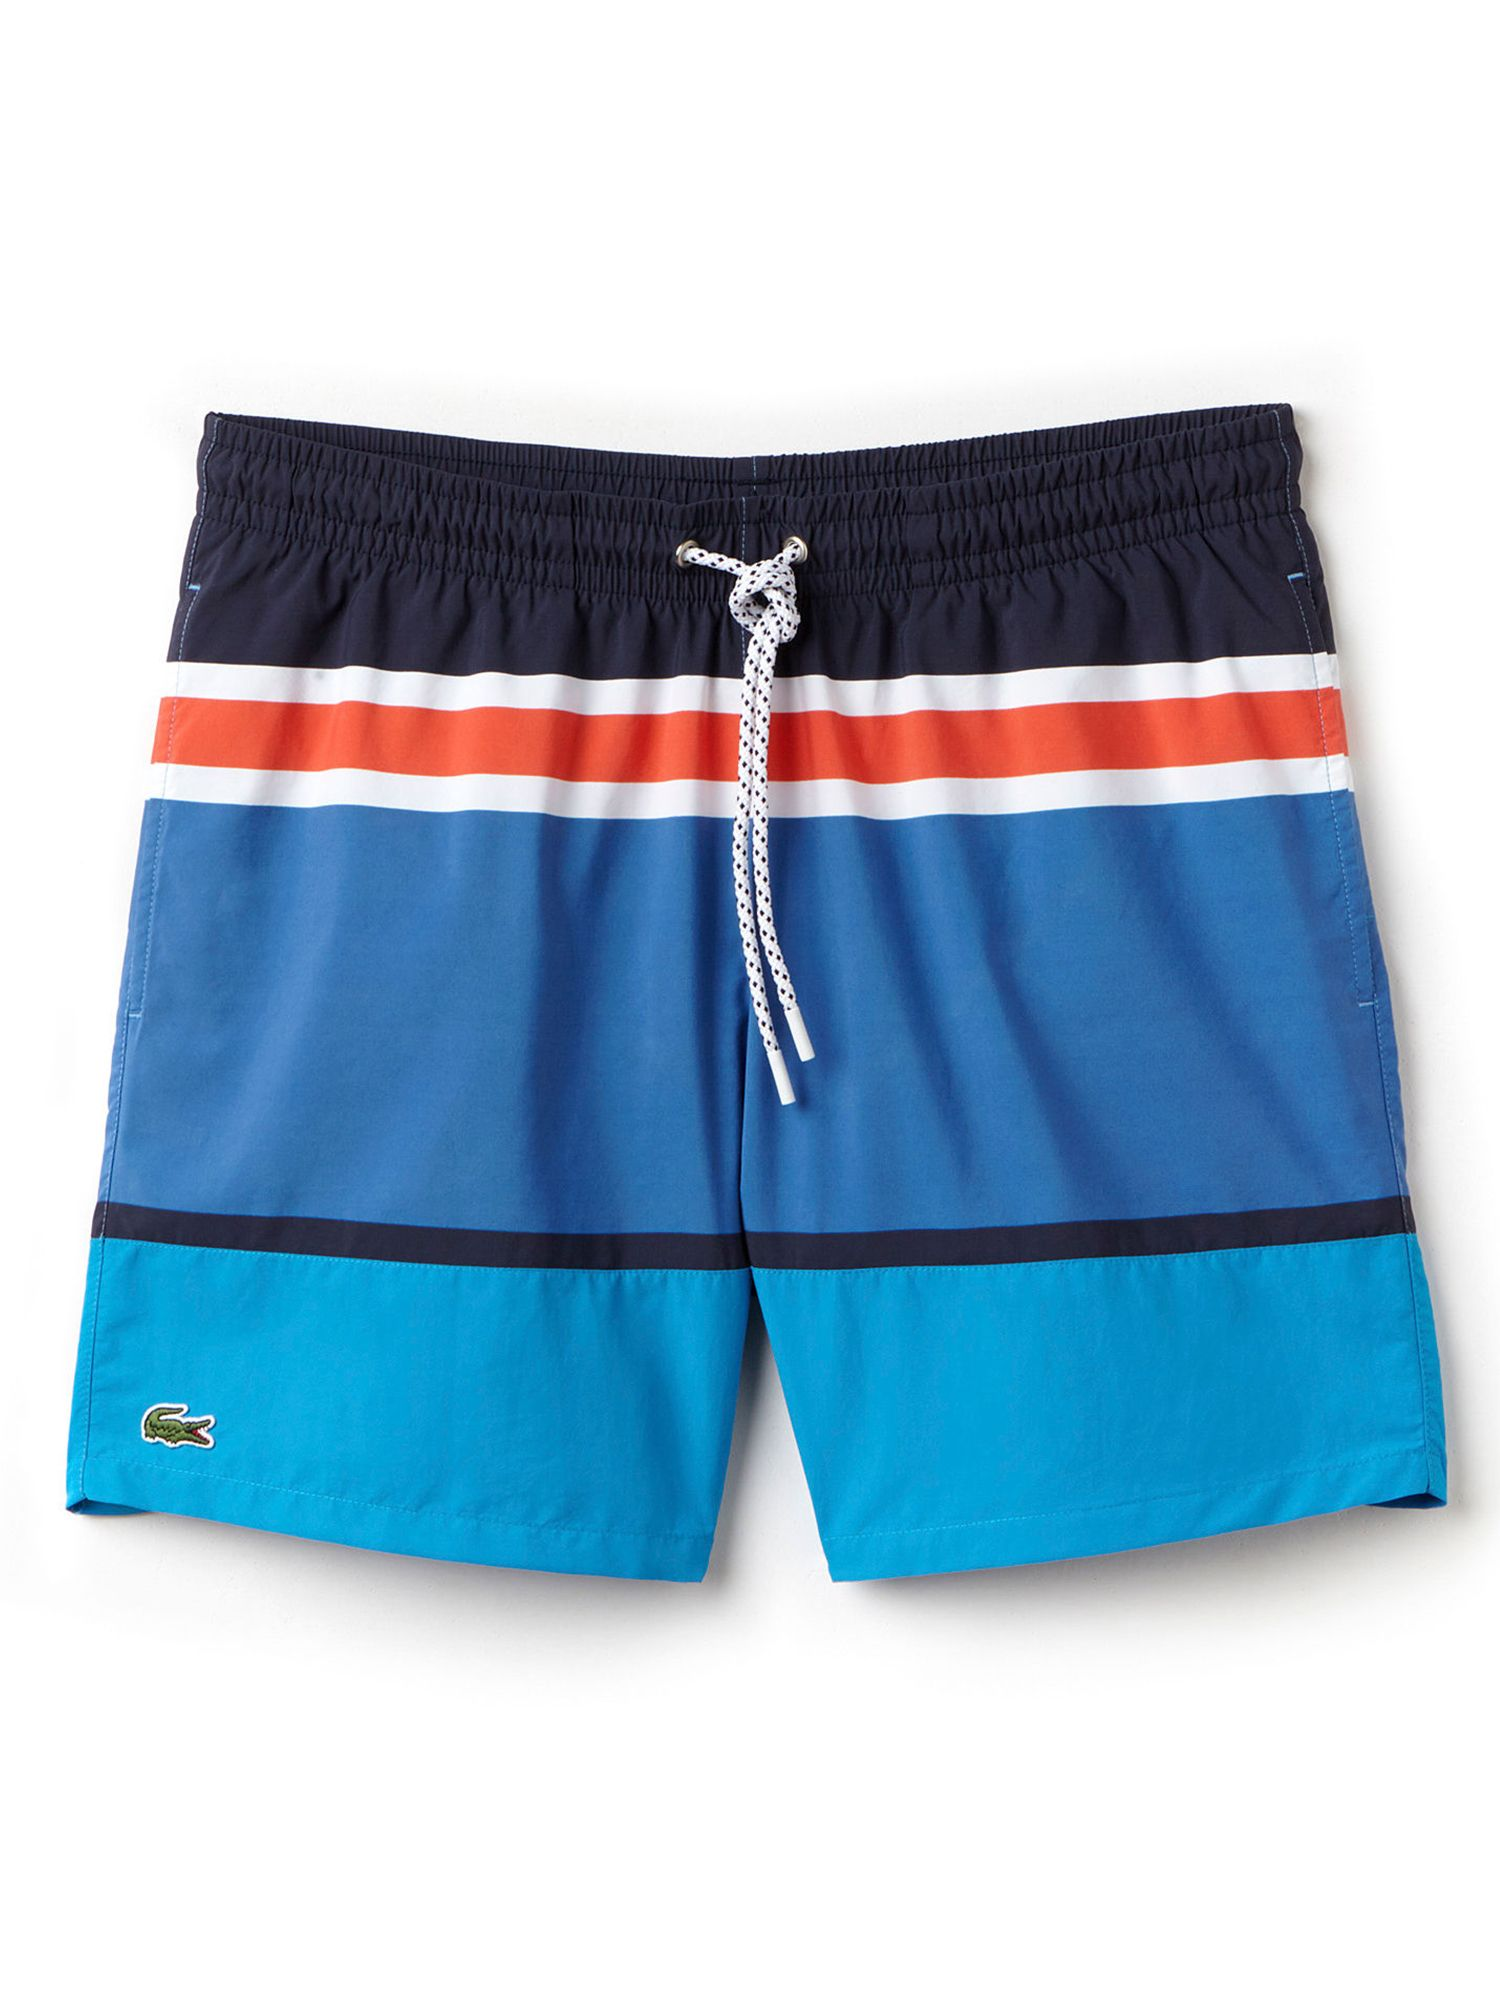 Mens Lacoste Colour Block Swim Shorts Vintage Blue